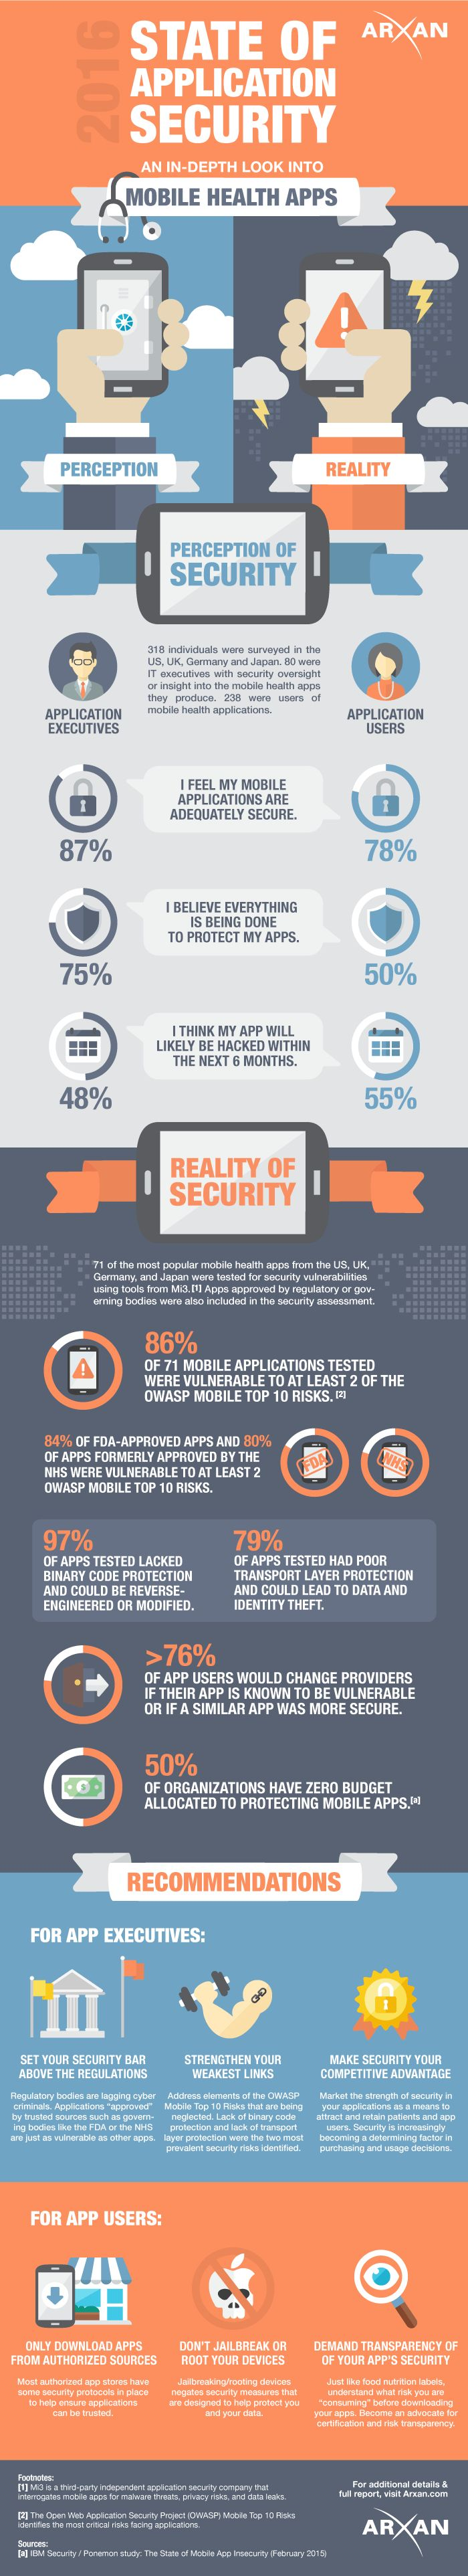 State of Mobile Health Apps Security: Perception vs. Reality